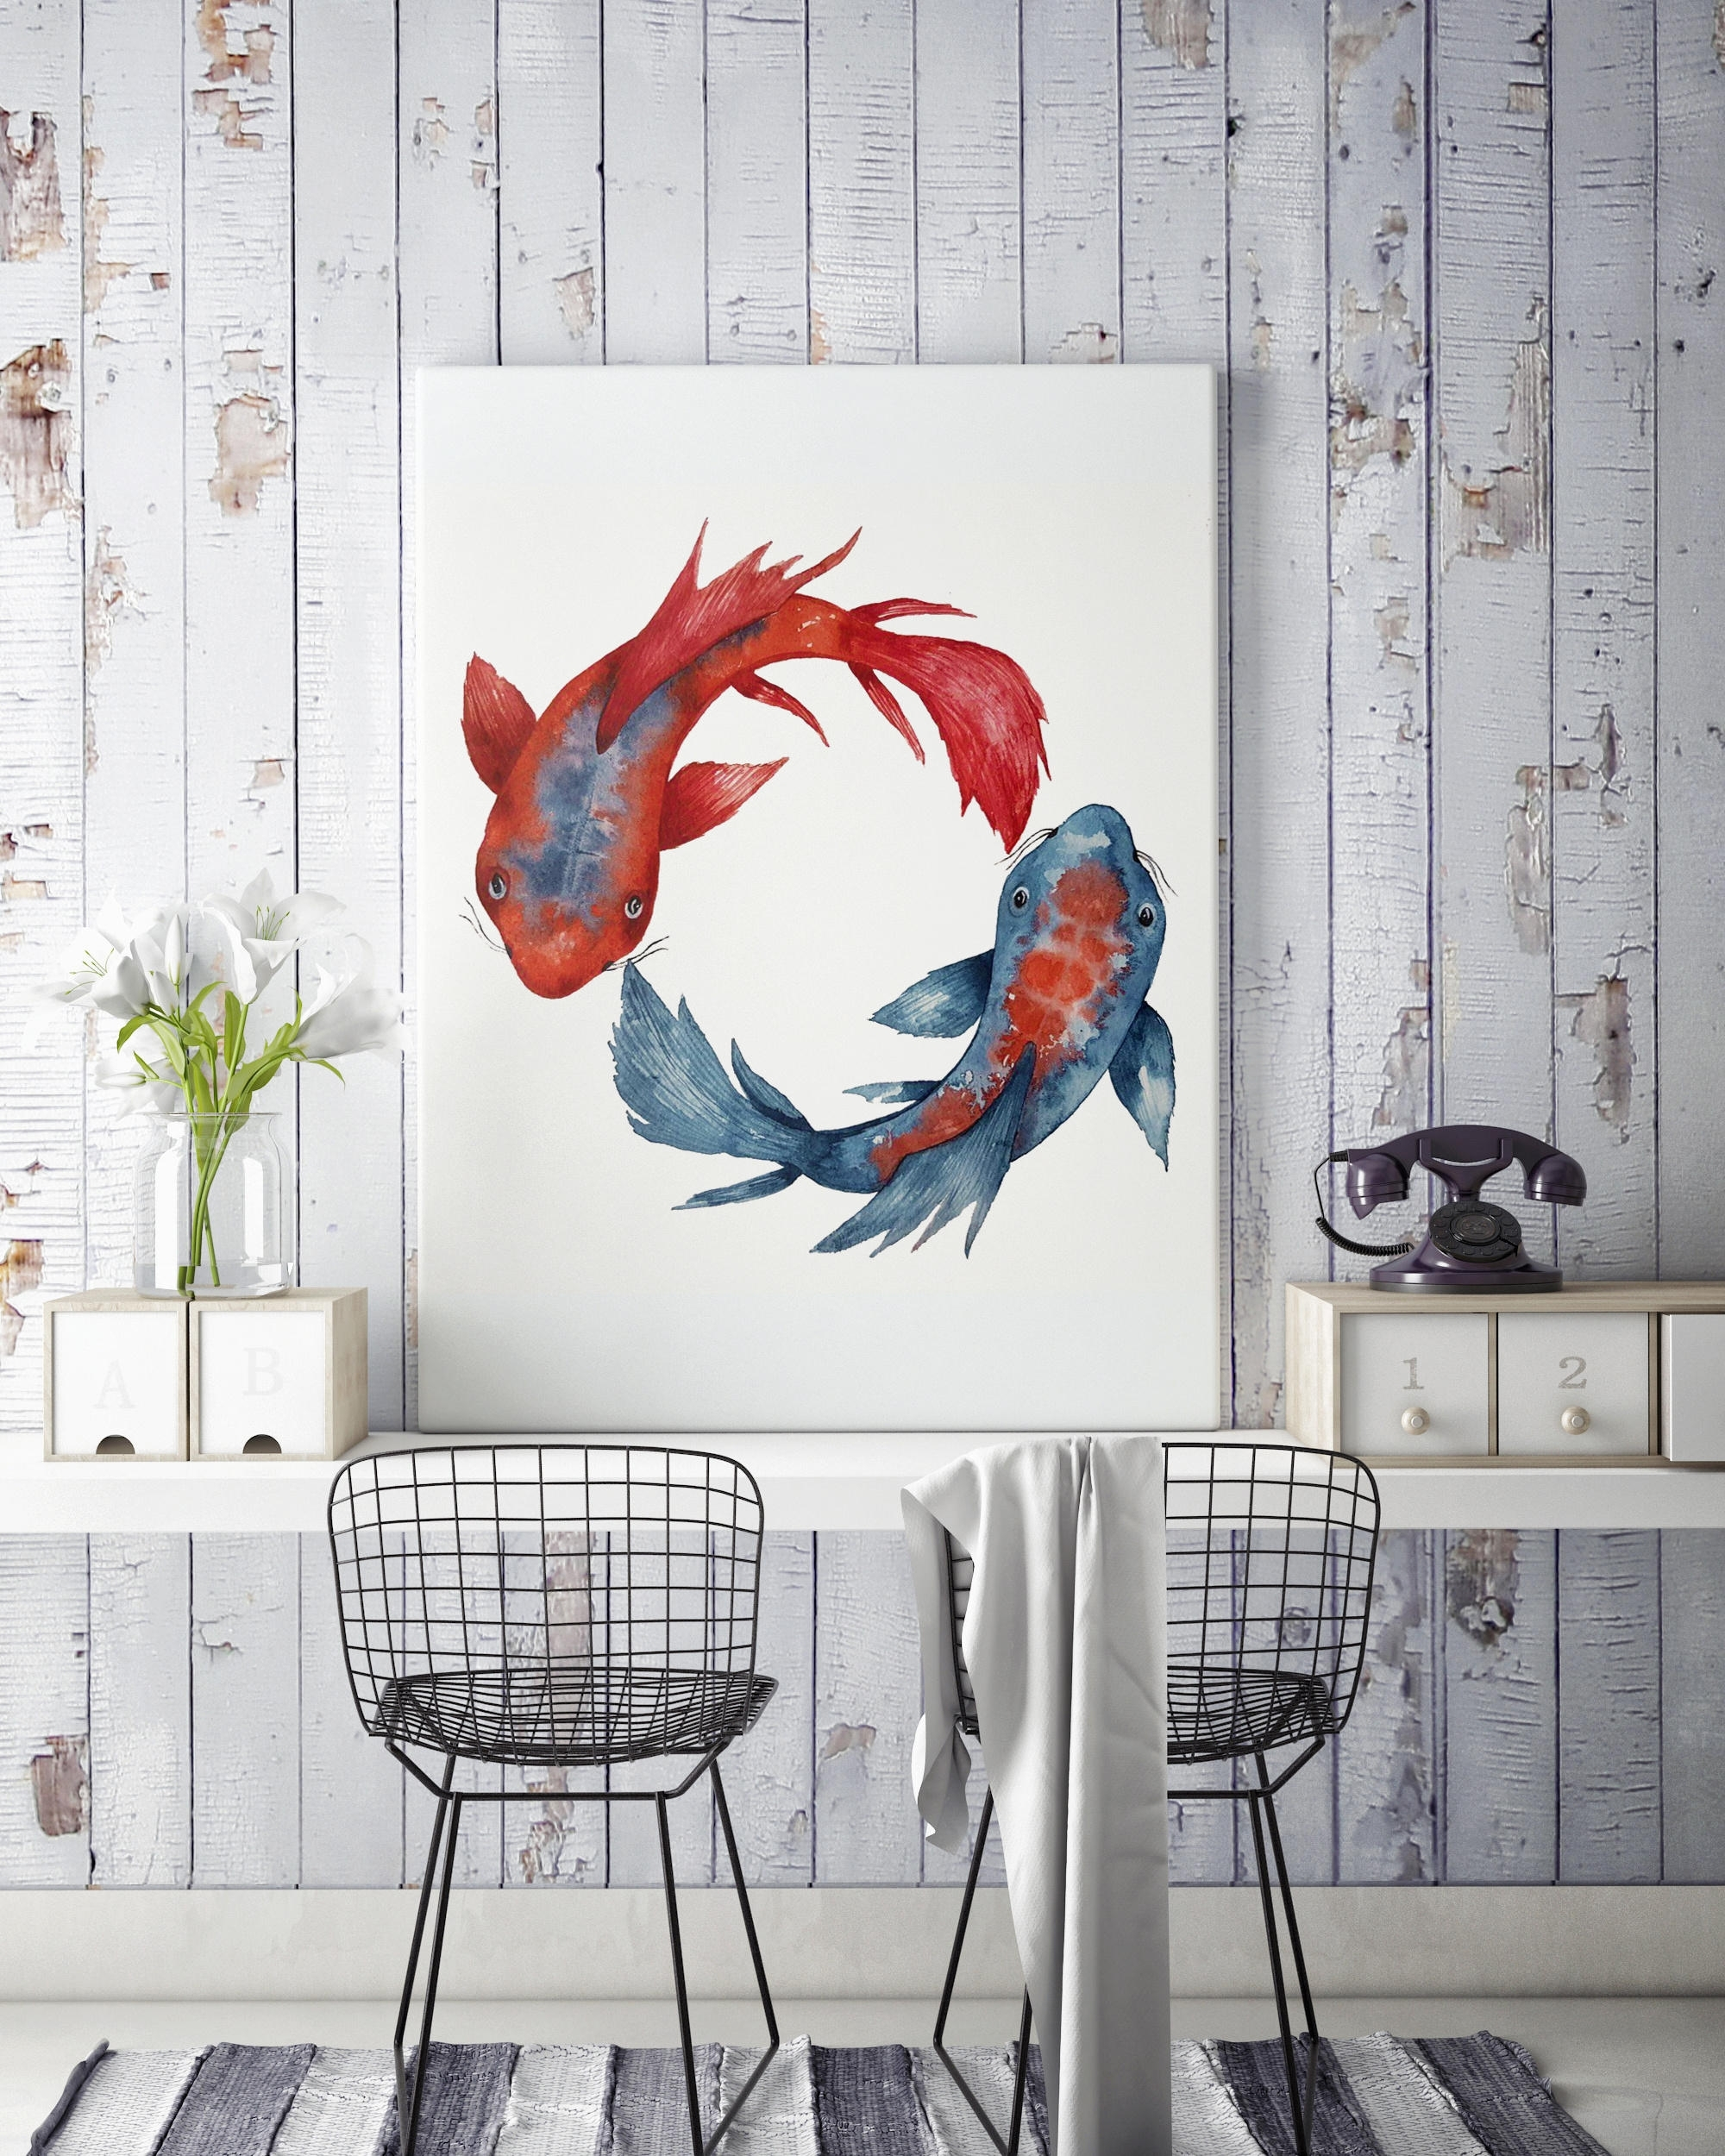 Yin Yang Koi Fish | Framed Canvas | Wall Decor | Watercolor Painting Intended For Fish Painting Wall Art (Photo 18 of 20)